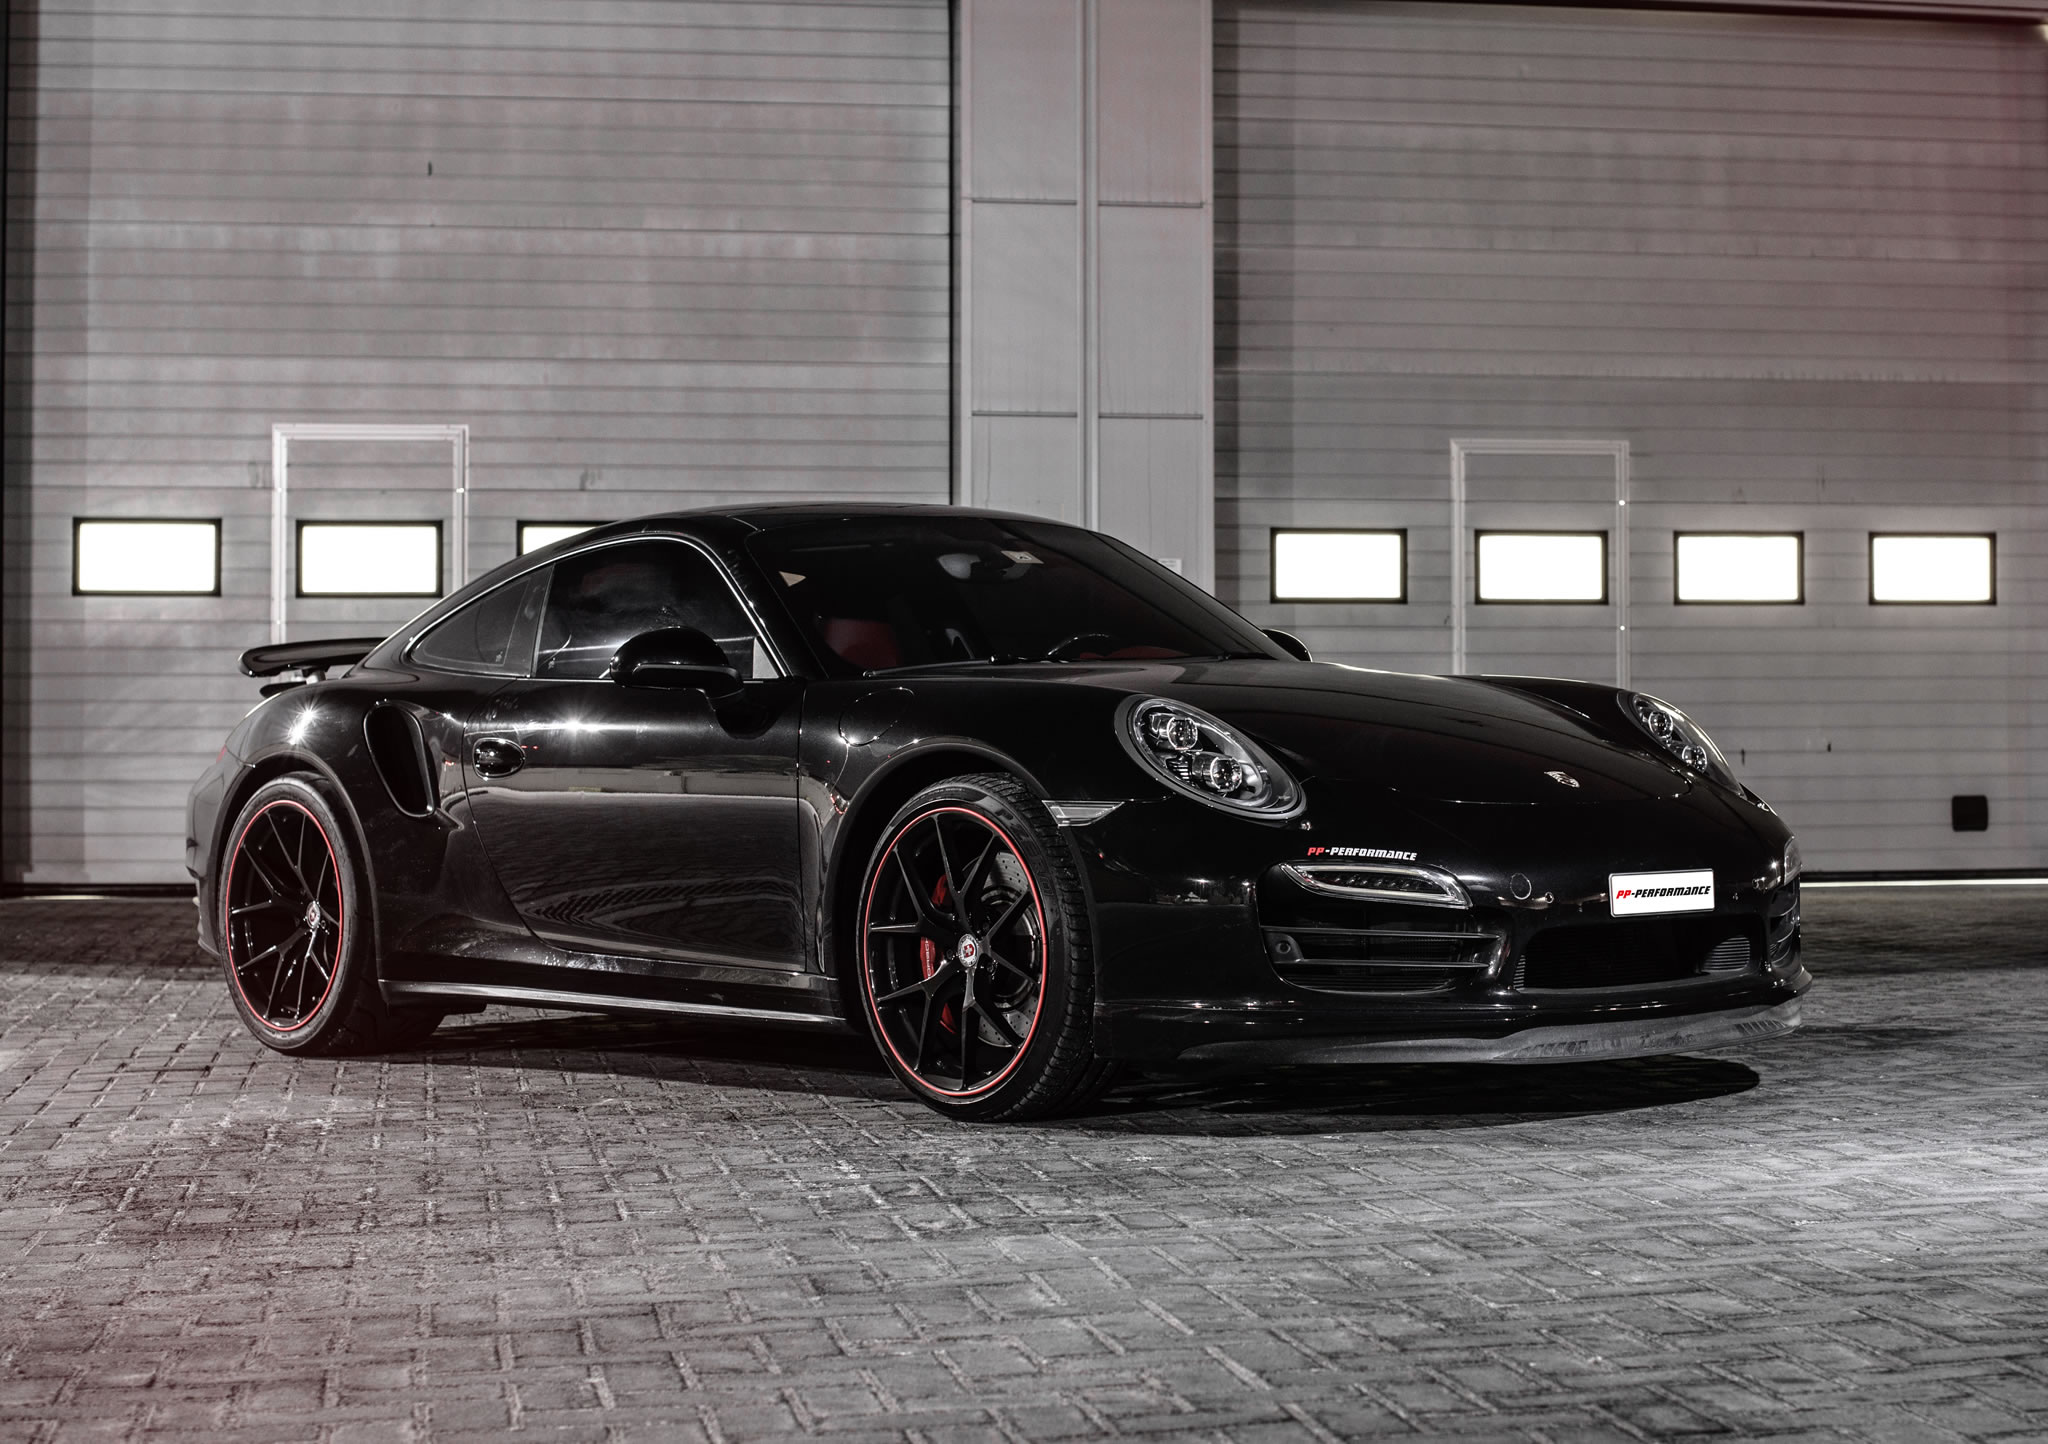 2015 Porsche 911 Turbo By Pp Performance Front Photo Sub 10 Second Quarter Mile Time Size